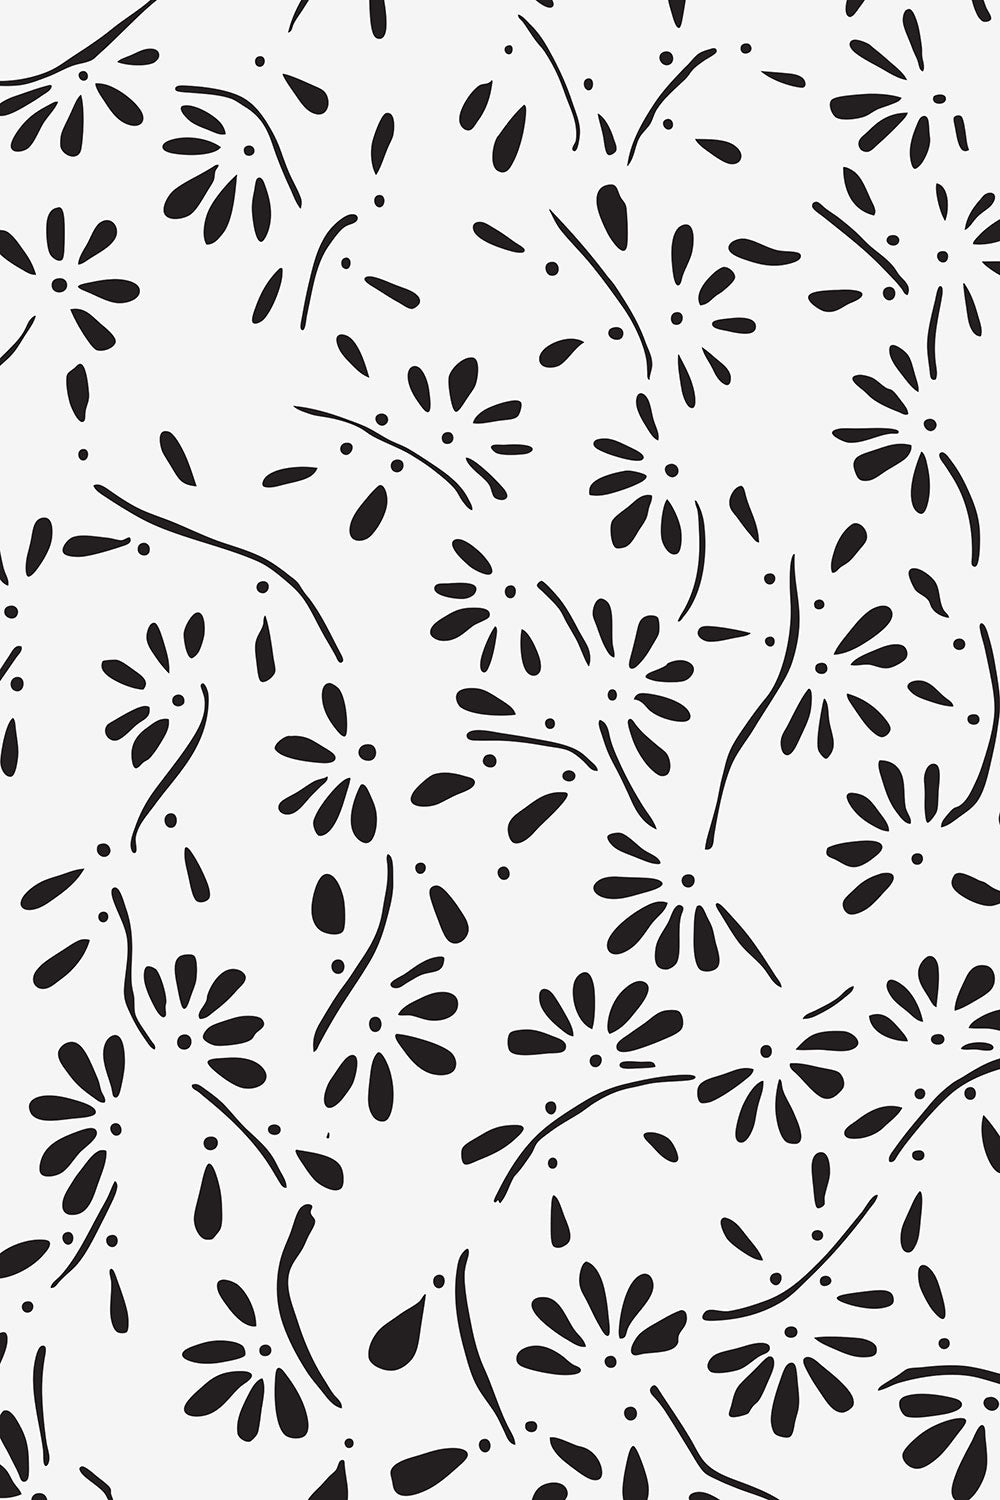 The School of Making Mylar Climbing Daisy Stencil for Embroidery DIY Kits